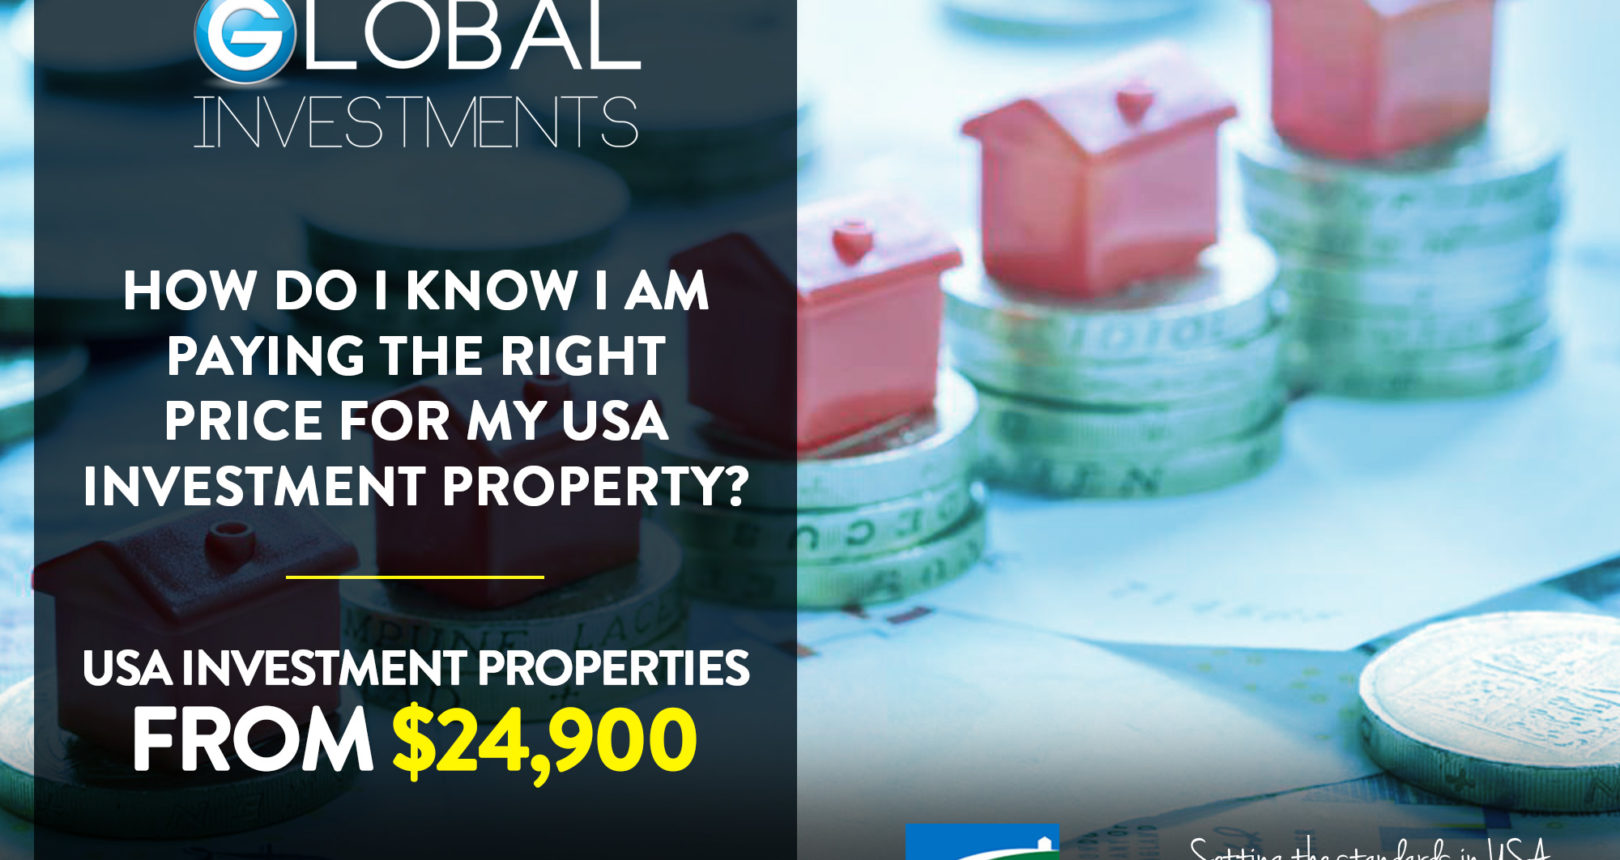 What should I be paying for my USA Investment Property and how can I be sure I am paying the right price ?